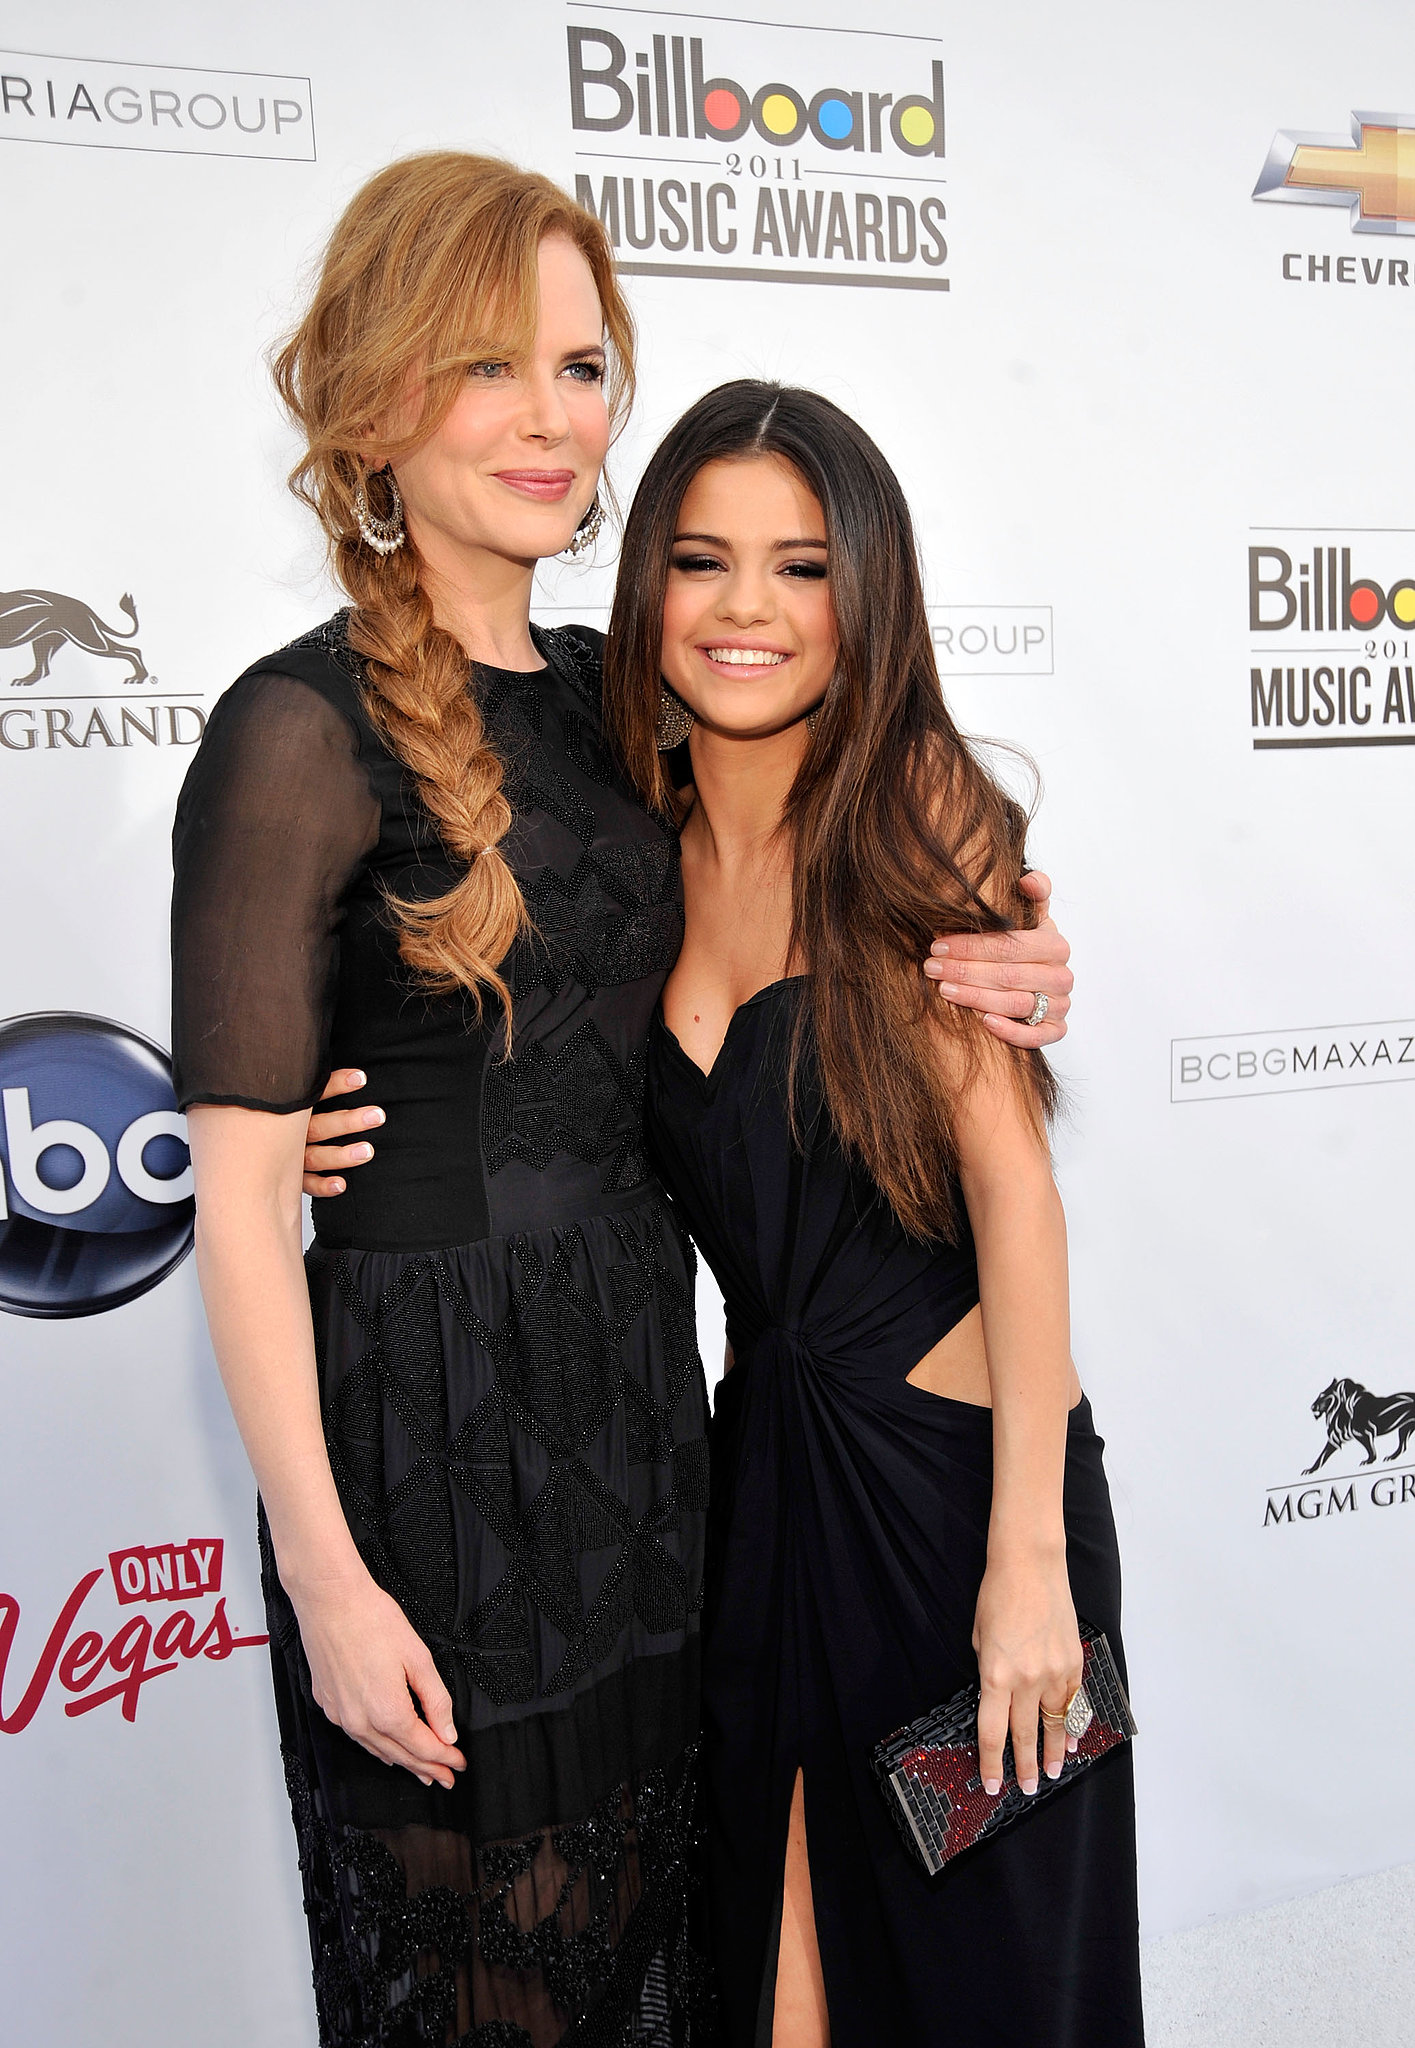 Nicole Kidman and Selena Gomez met up on the Billboard Music Awards red carpet in December 2011.